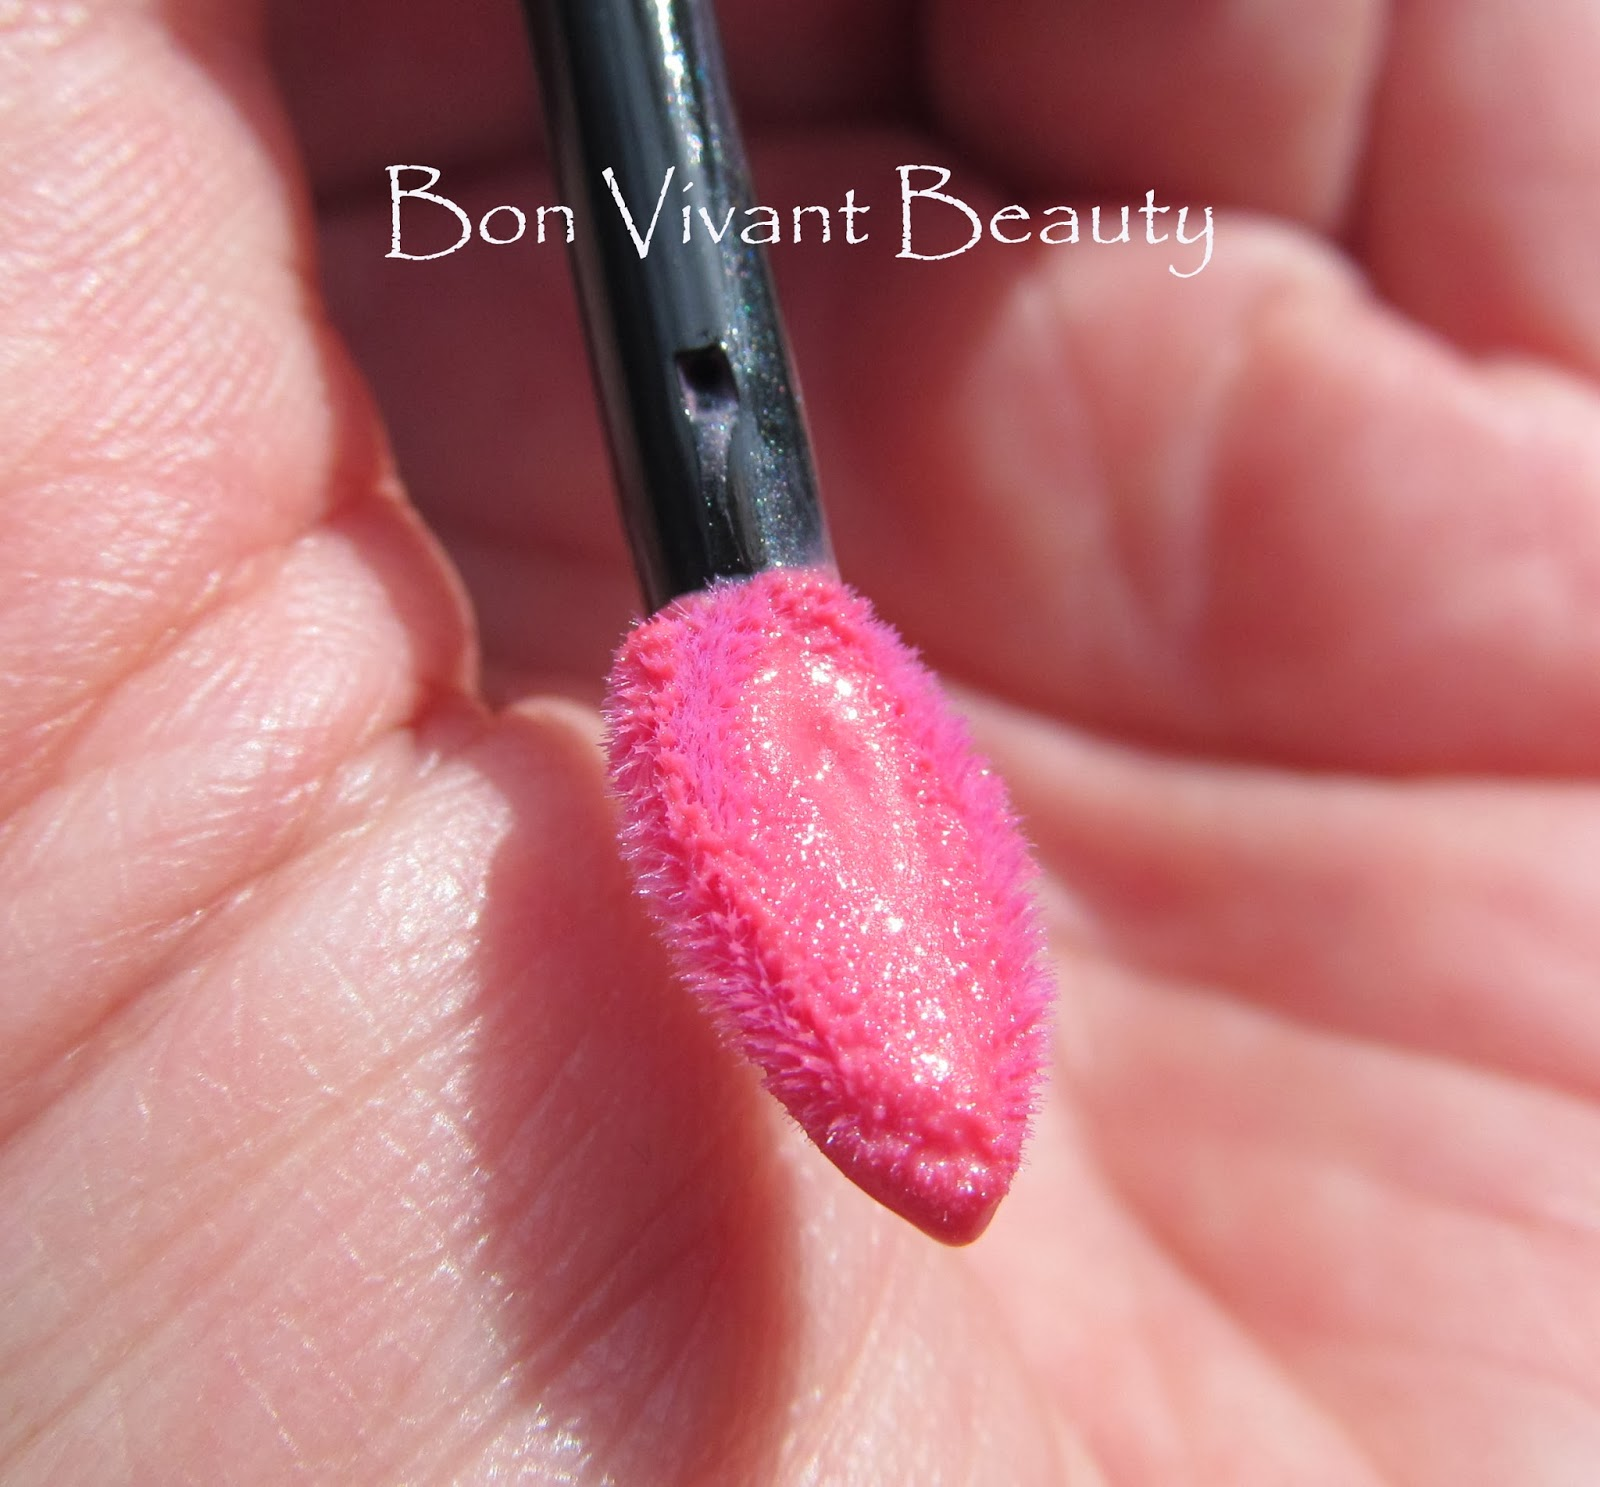 Loreal colour caresse wet shine stain - Rose On And On